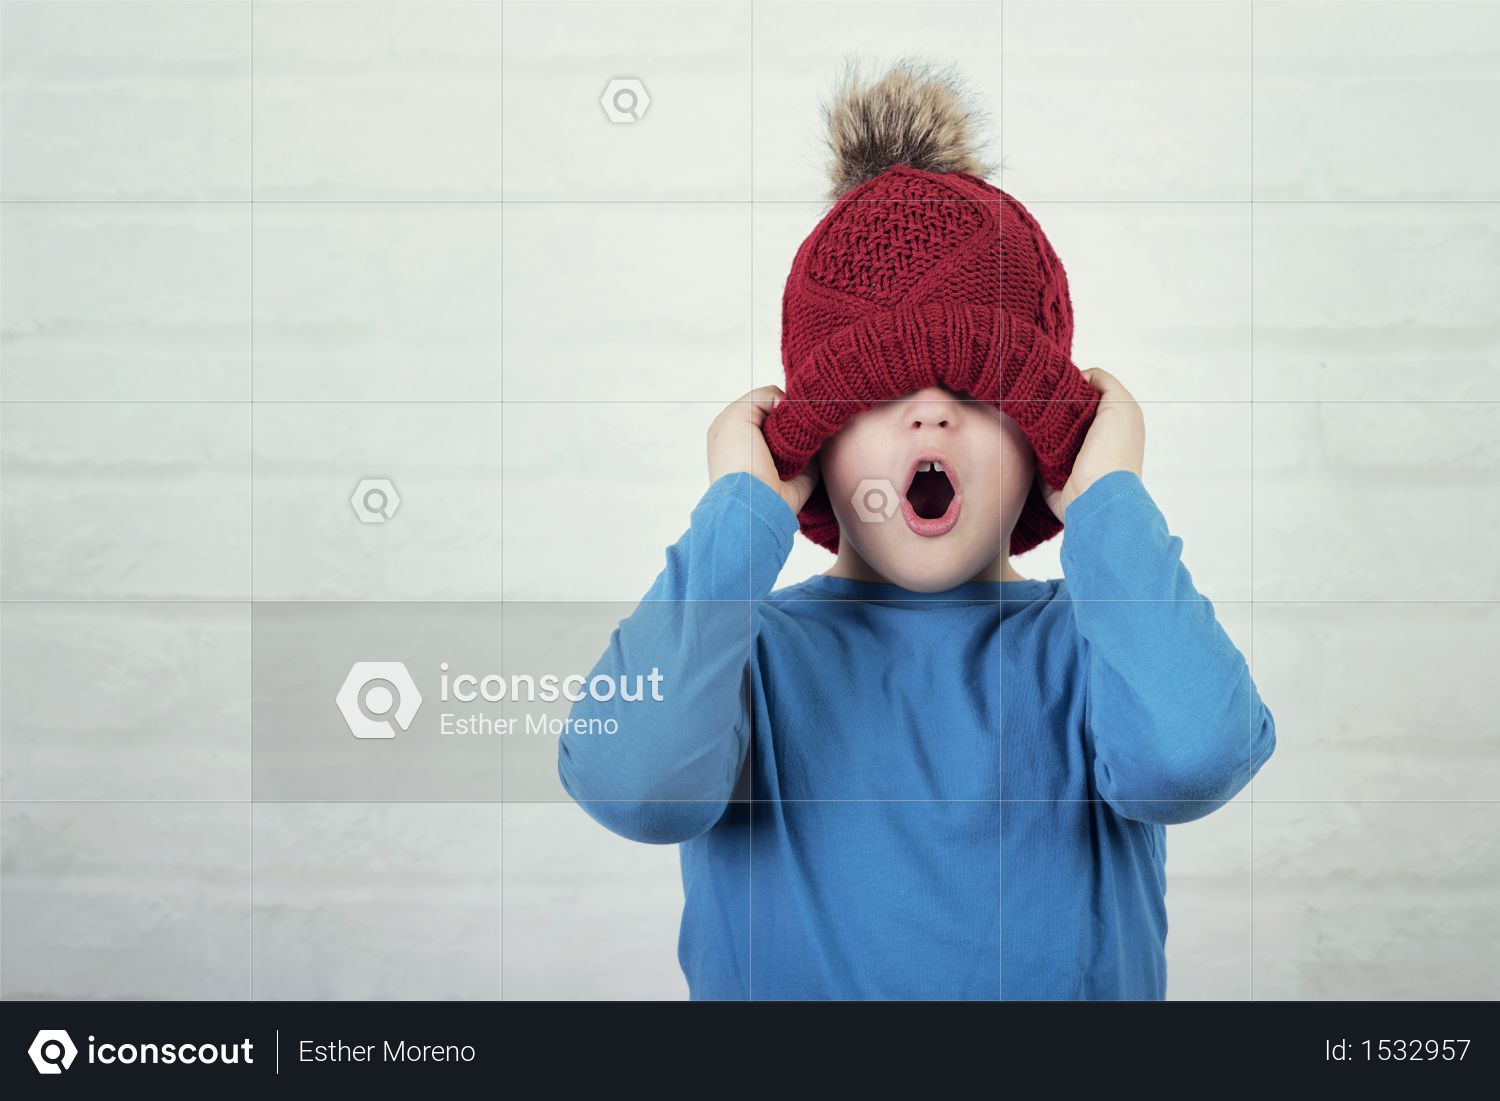 Premium Funny Child With Winter Hat Photo Download In Png Jpg Format Funny Kids Winter Hats Hats